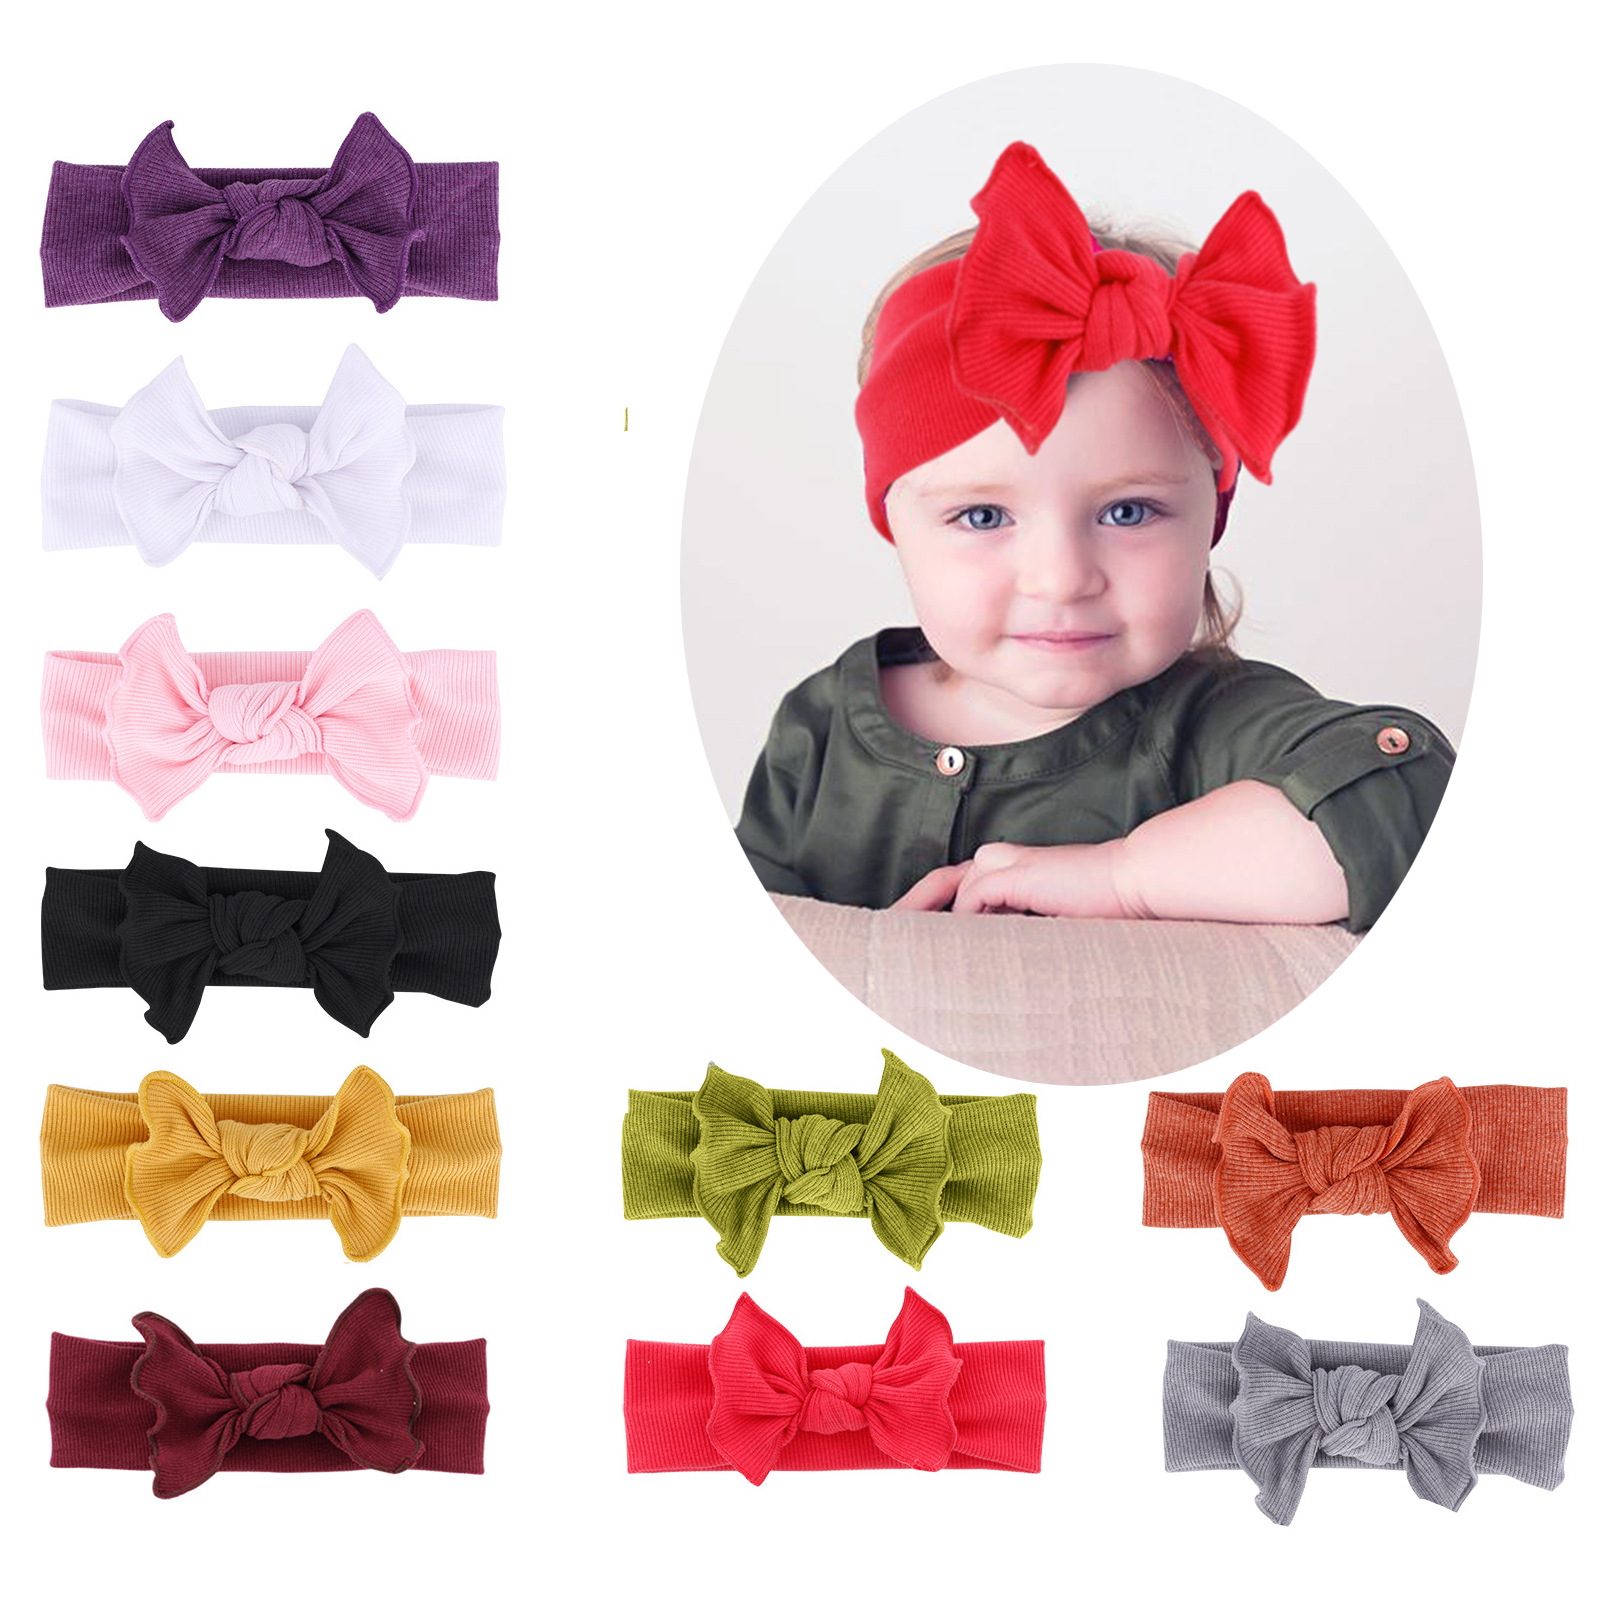 Emmababy Nylon Bowknot Infant Baby Headband Flower Hair Accessories Hair Band